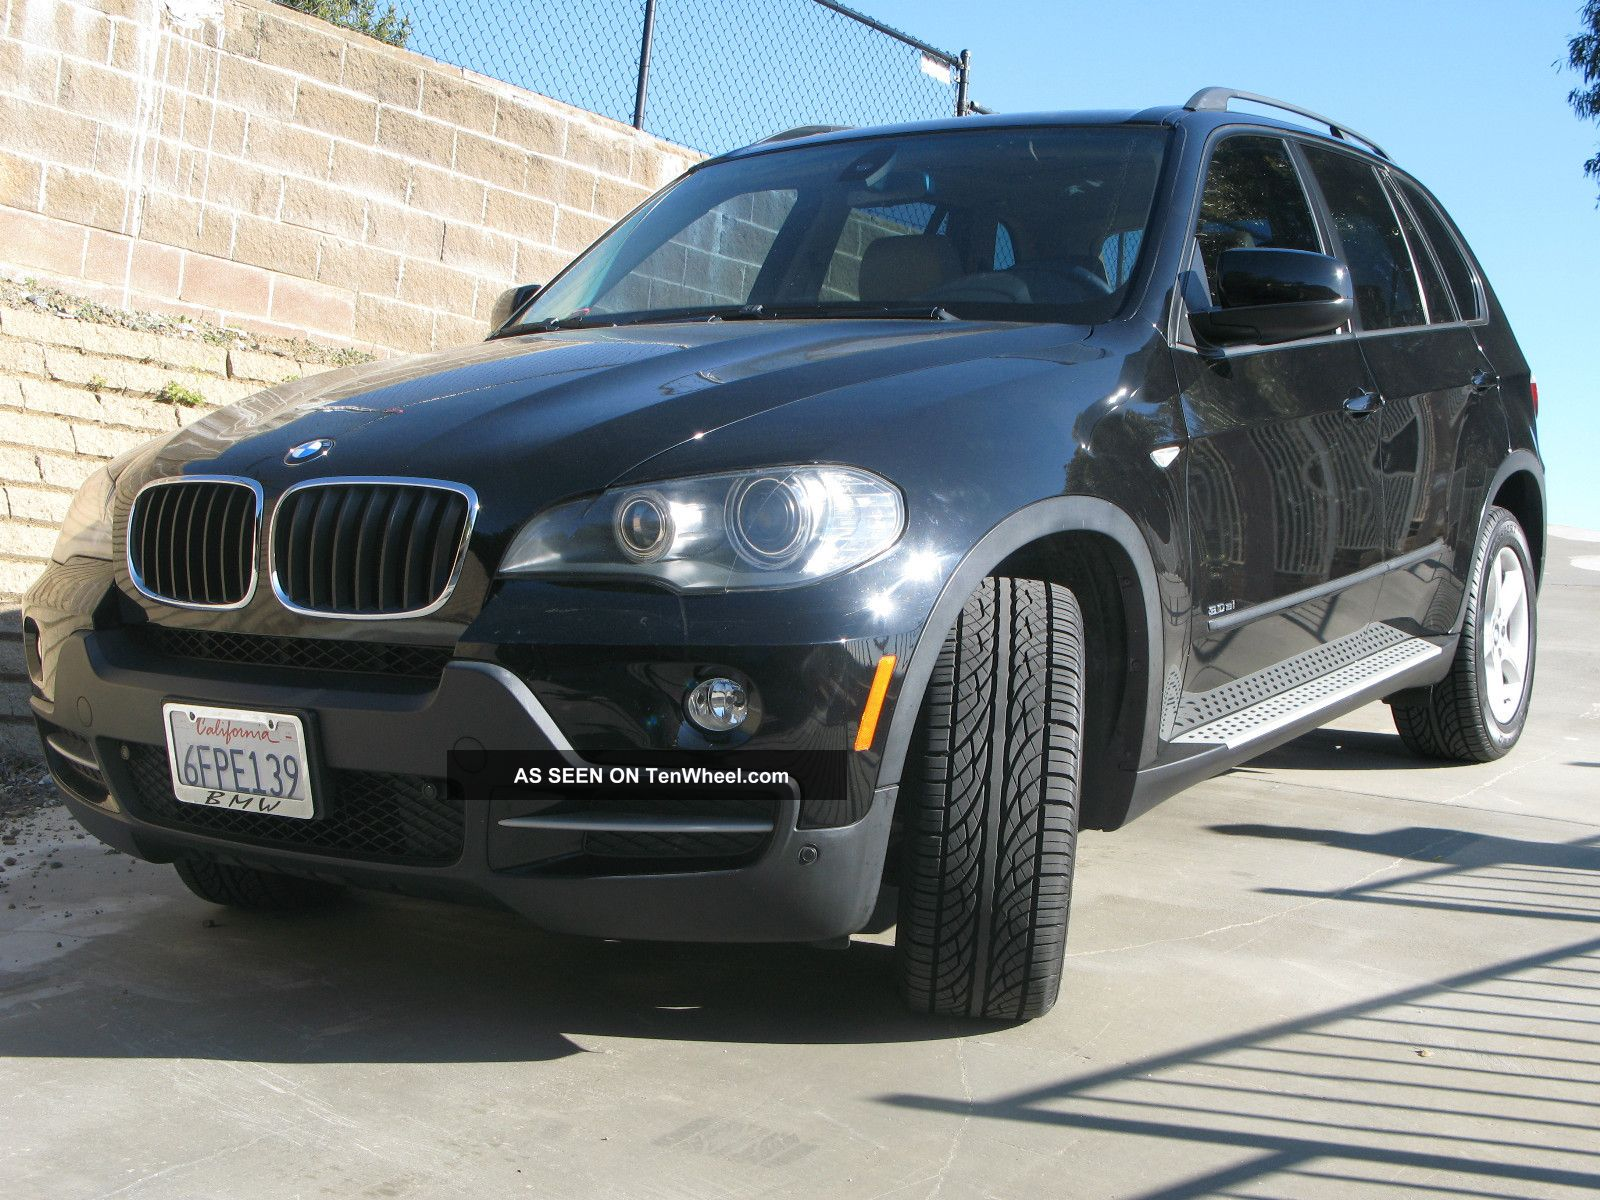 2007 Bmw X5 (e70) - pictures, information and specs - Auto-Database.com